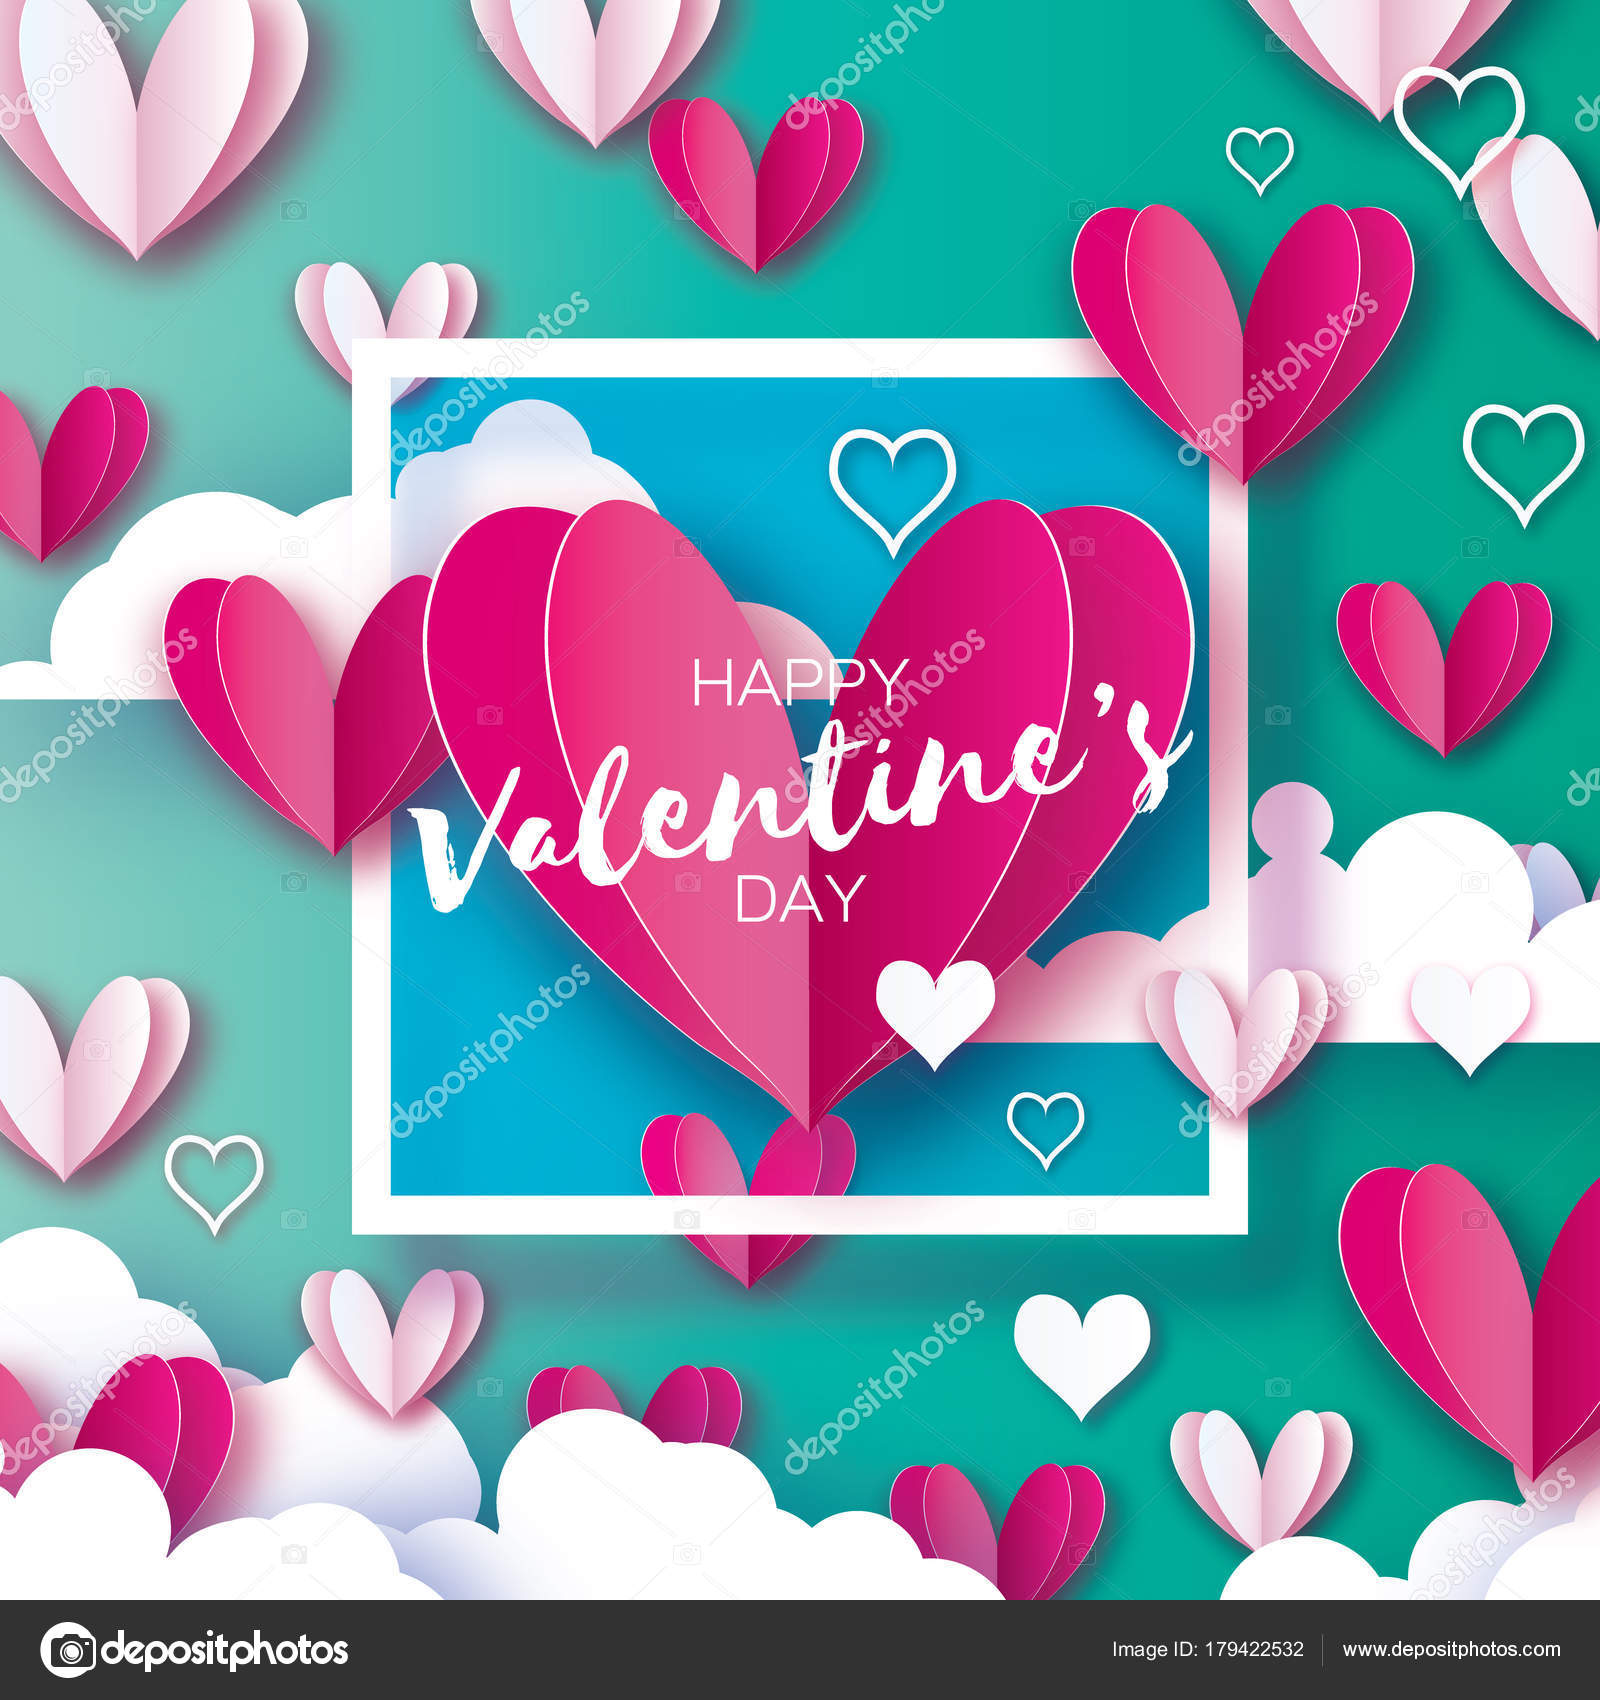 Happy valentines day card origami hearts paper Vector Image | 1700x1600